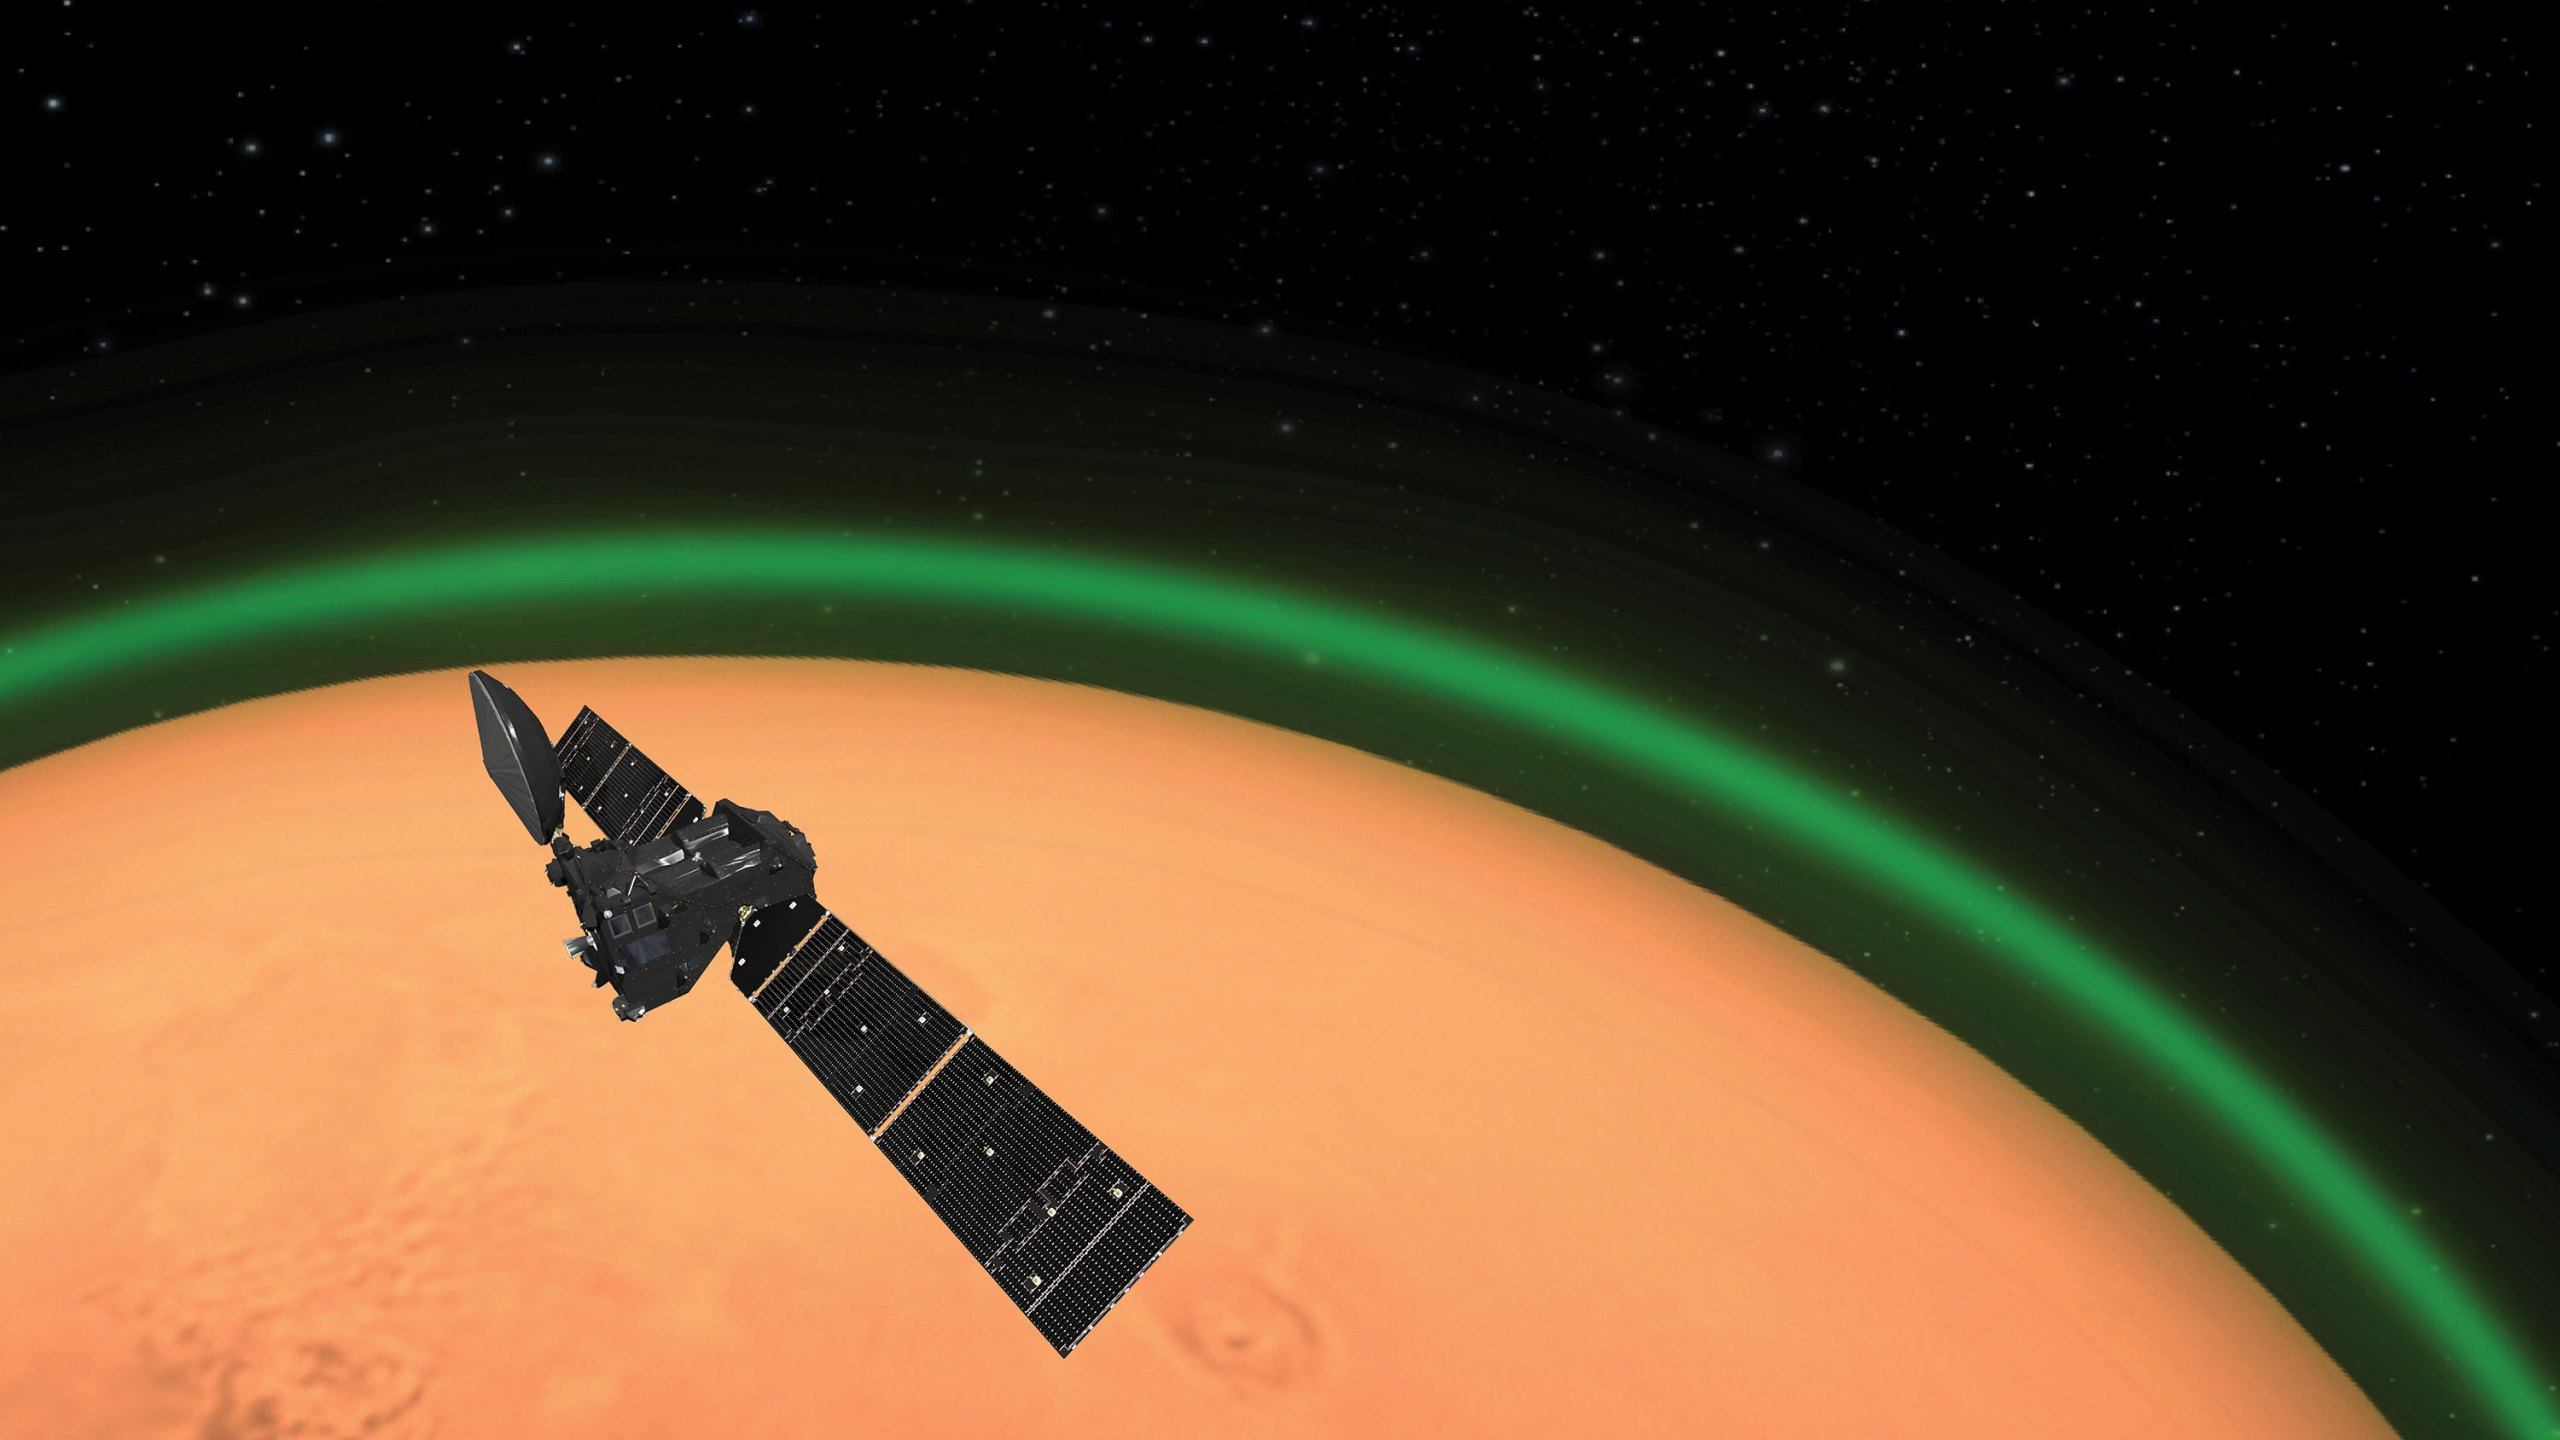 Picture of Mars with green glow around it